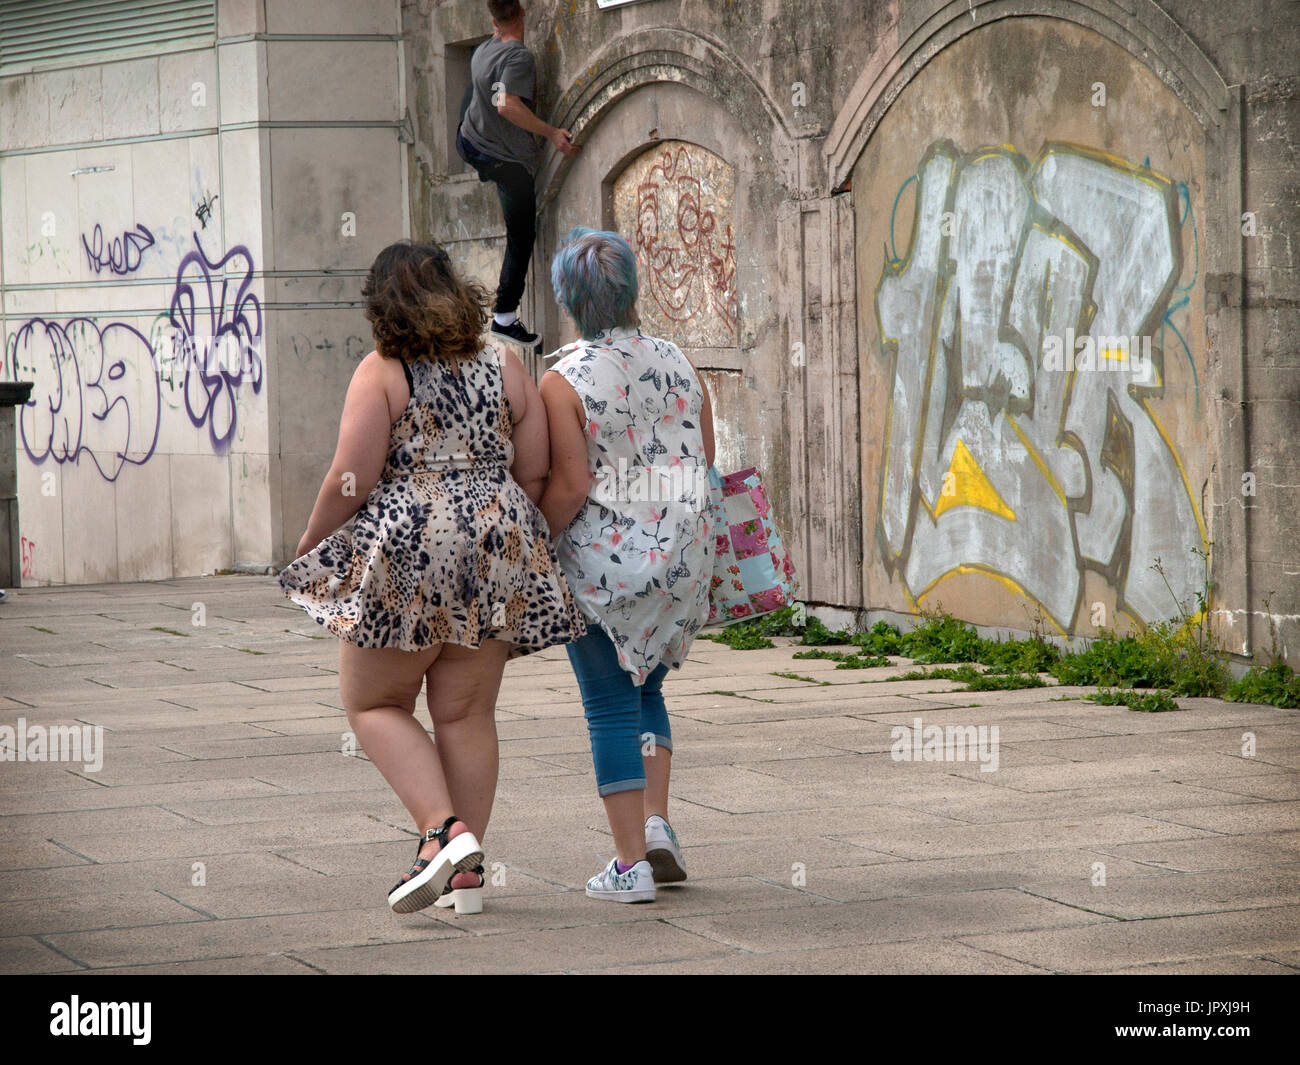 On a graffiti clad wall in Brighton a parkour enthusiast is watched climbing up a wall - Stock Image